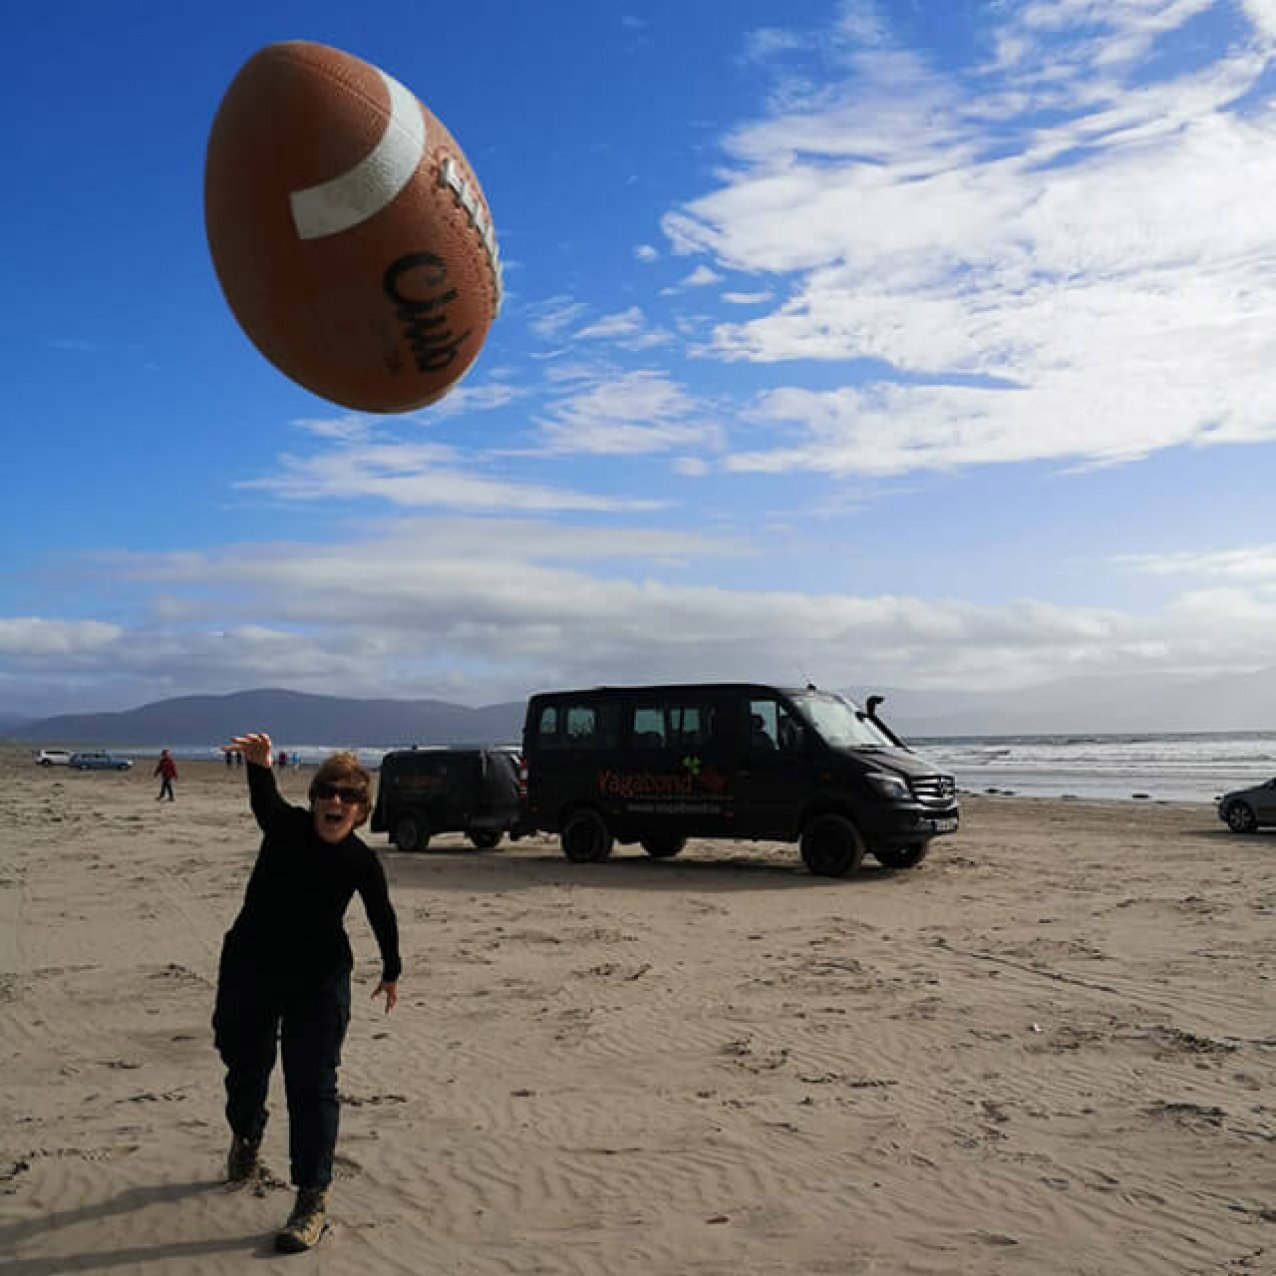 A lady throwing an american football towards the camera on a beach with a Vagabond vehicle in the background